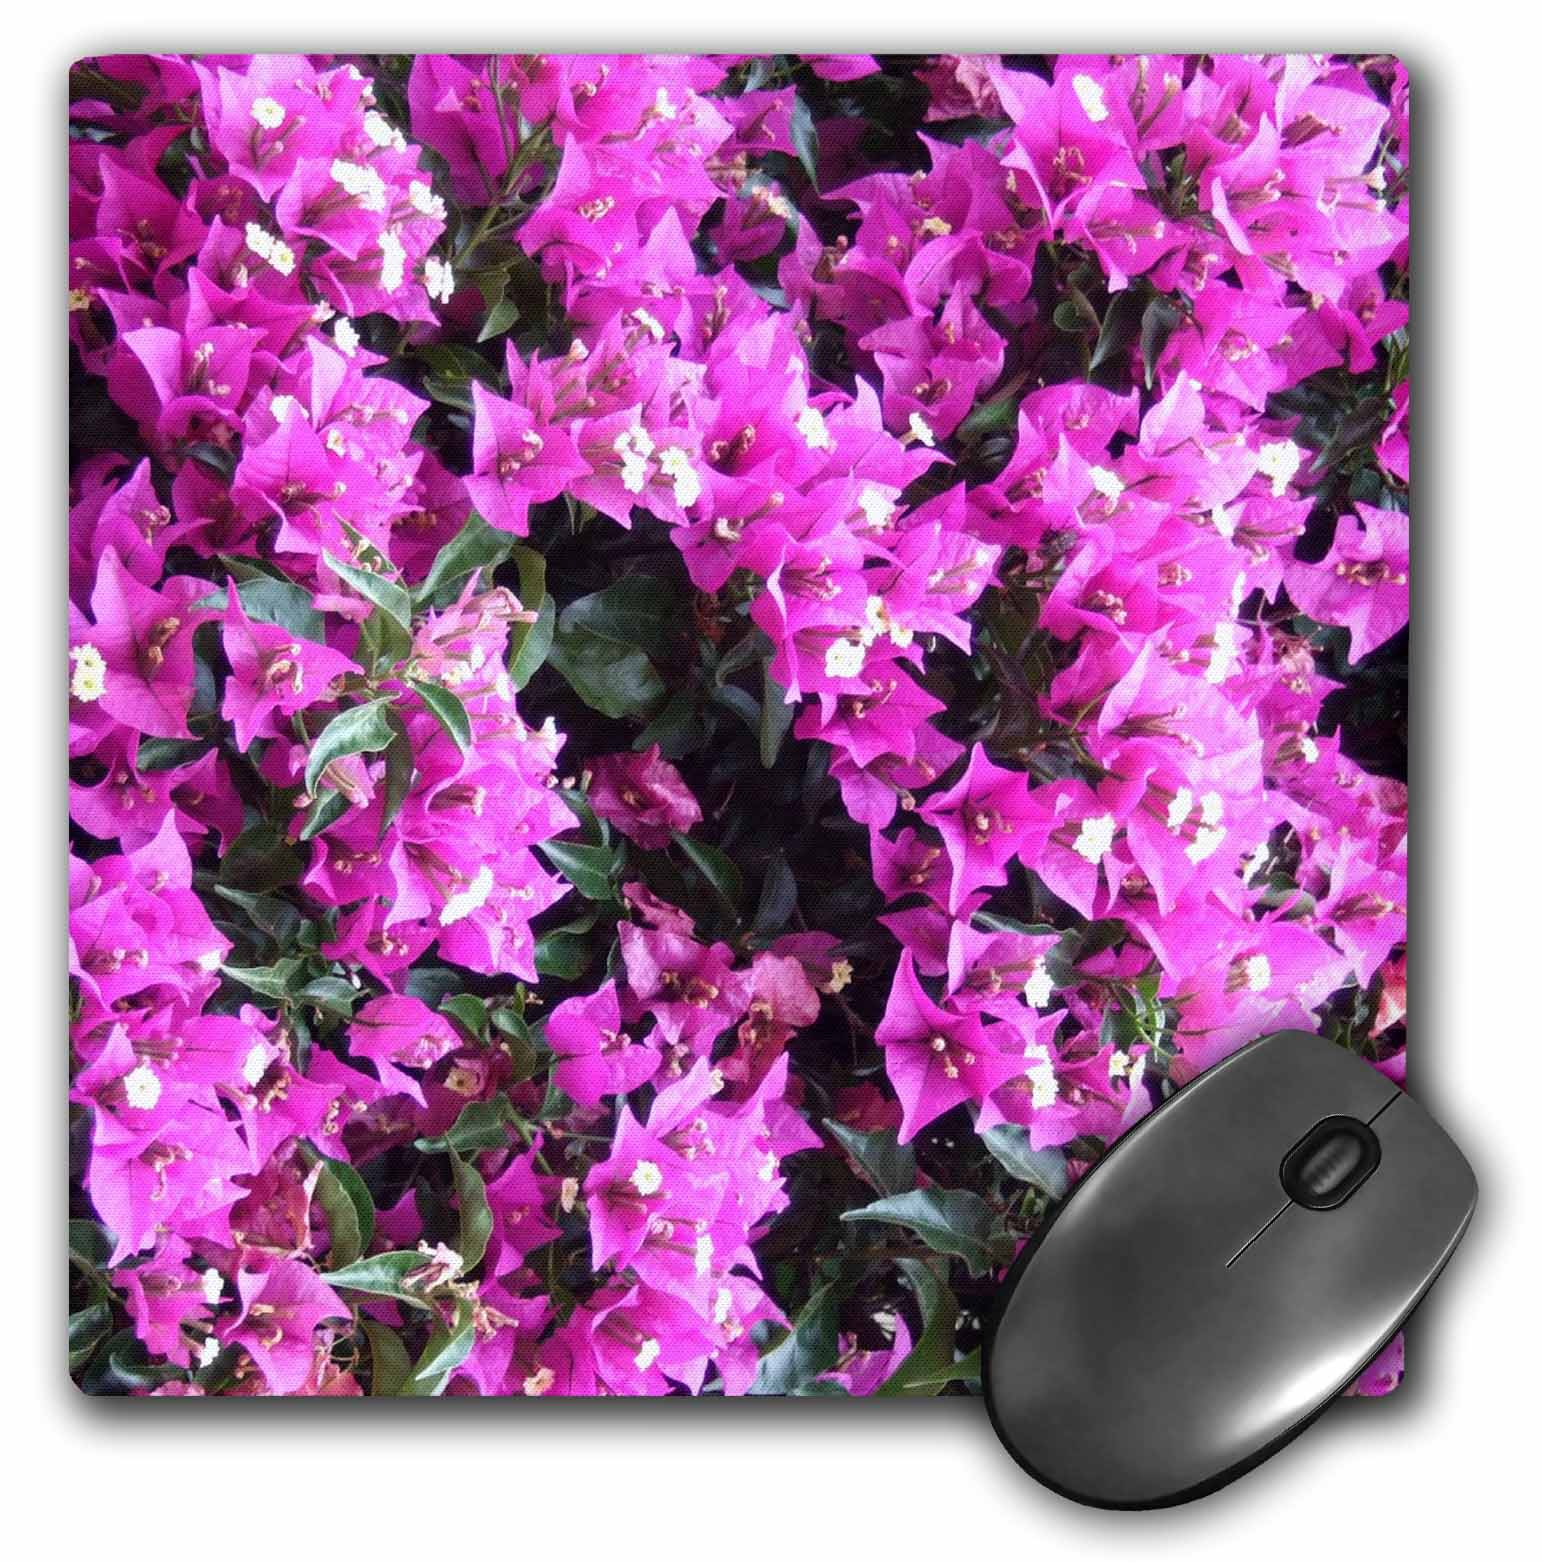 3dRose Magenta pink Bougainvillea flowers bright purple climbing floral plant, Mouse Pad, 8 by 8 inches